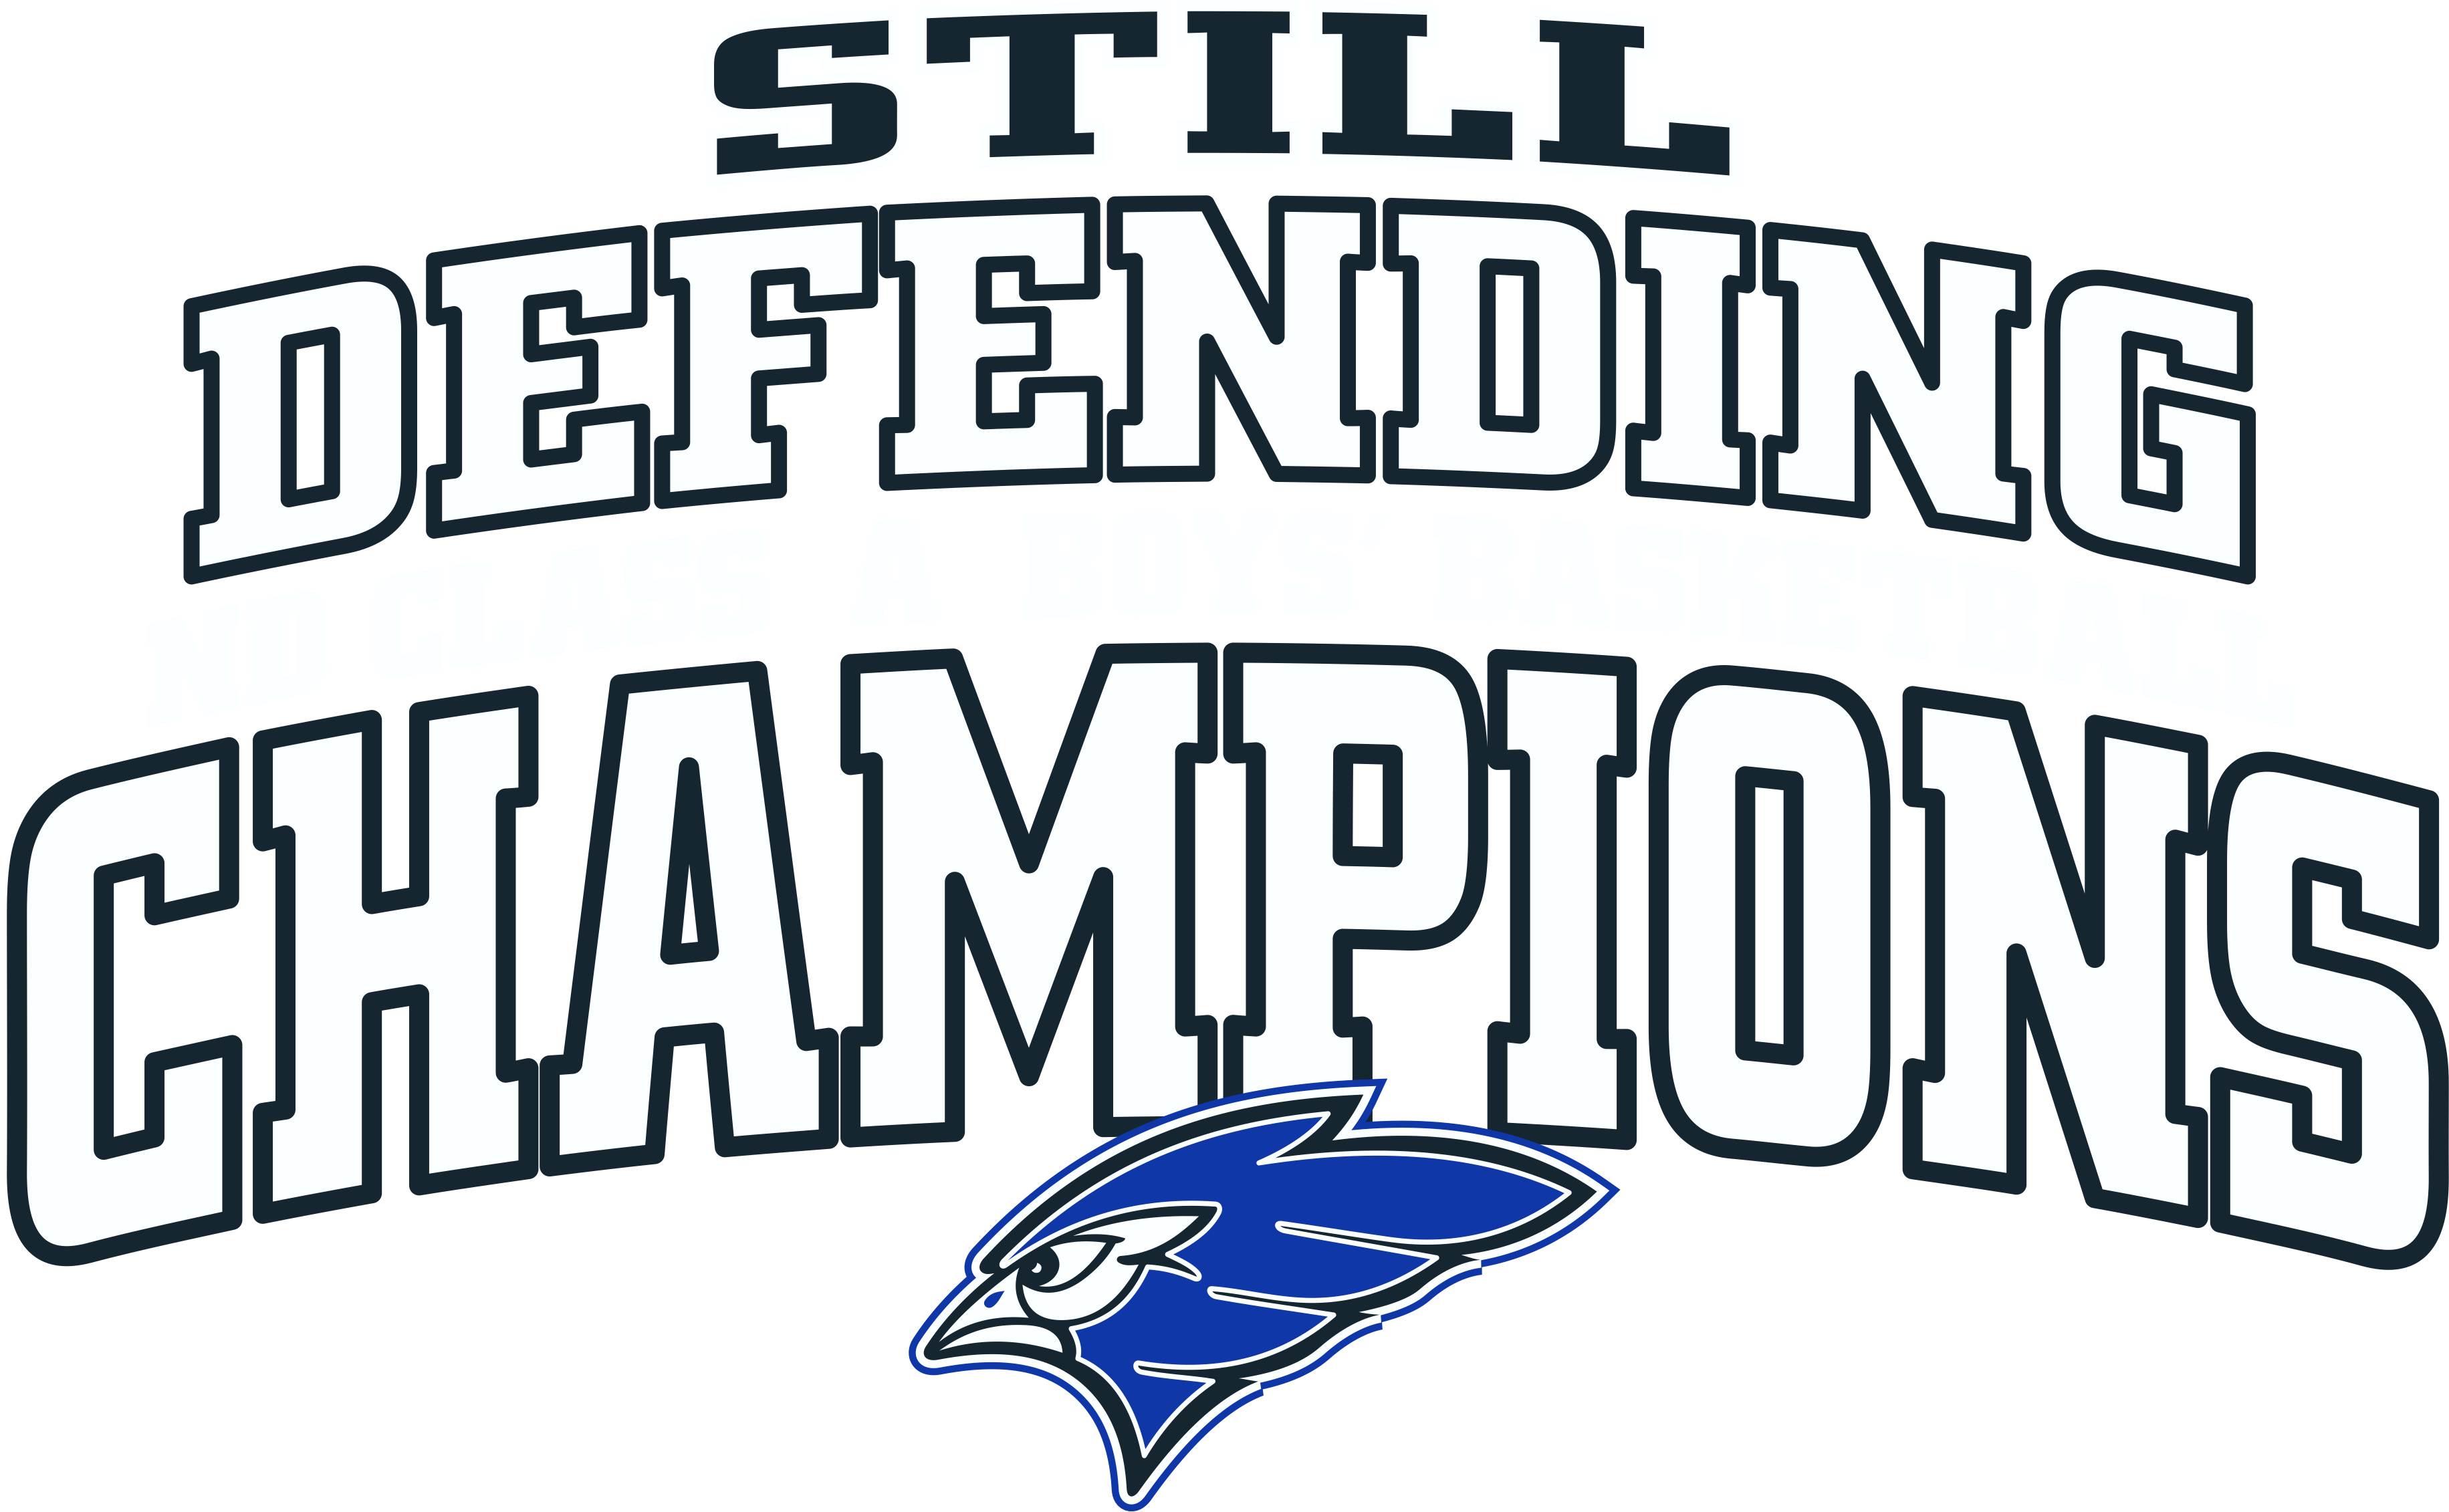 blue-jay-boys-basketball-champs-logo-20.png